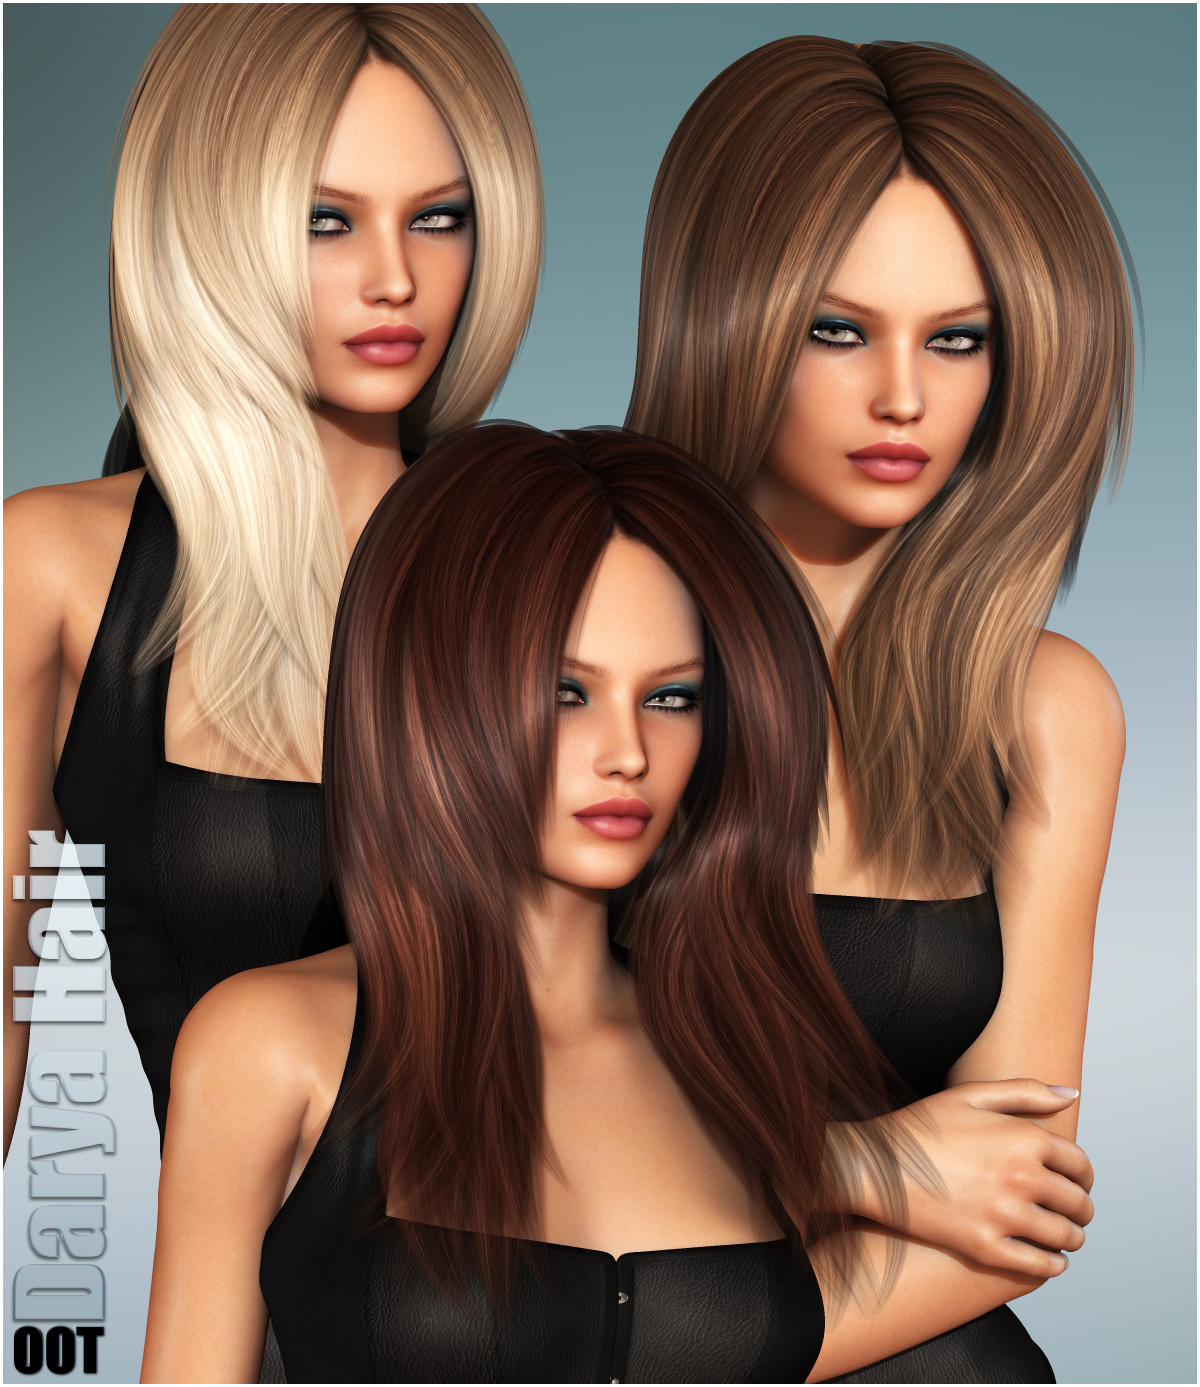 Darya Hair and OOT Hairblending by outoftouch